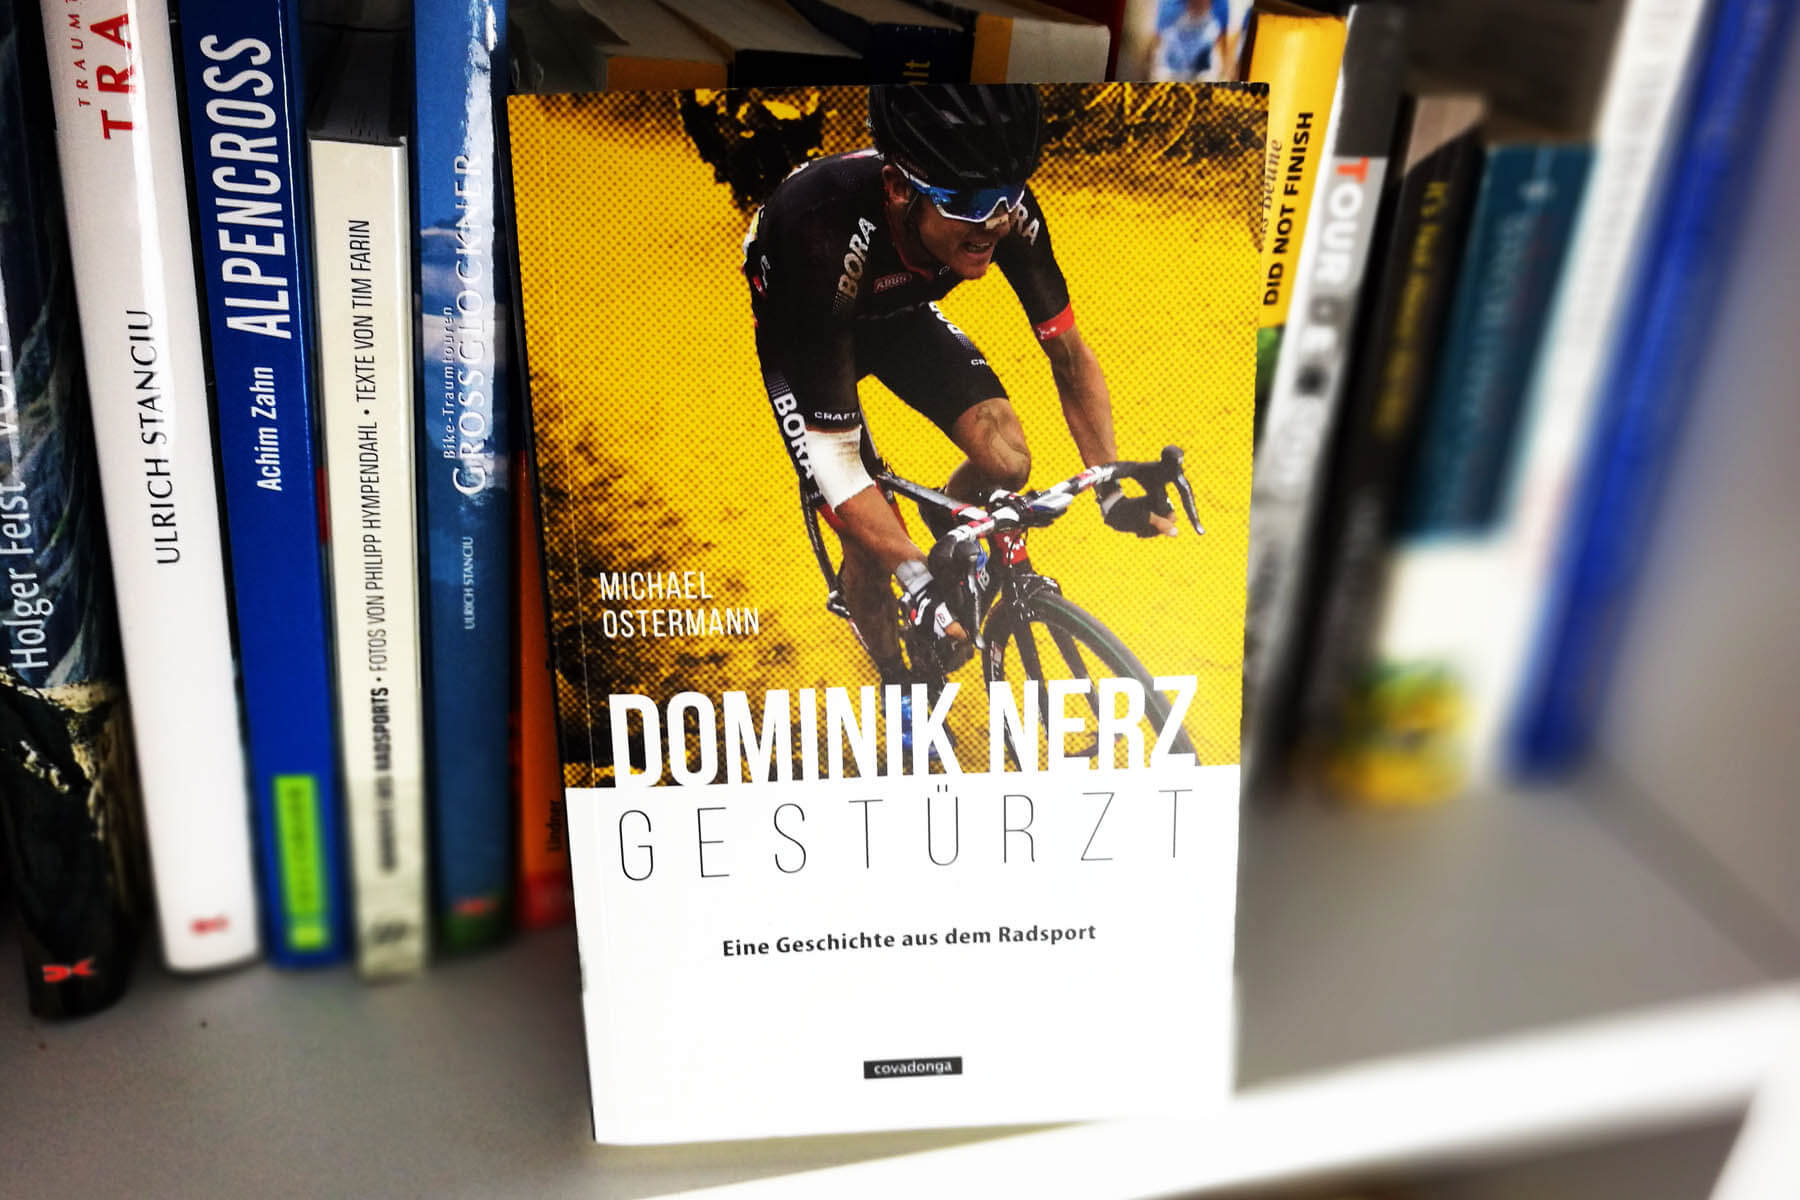 dominik nerz michael ostermann buch radsport